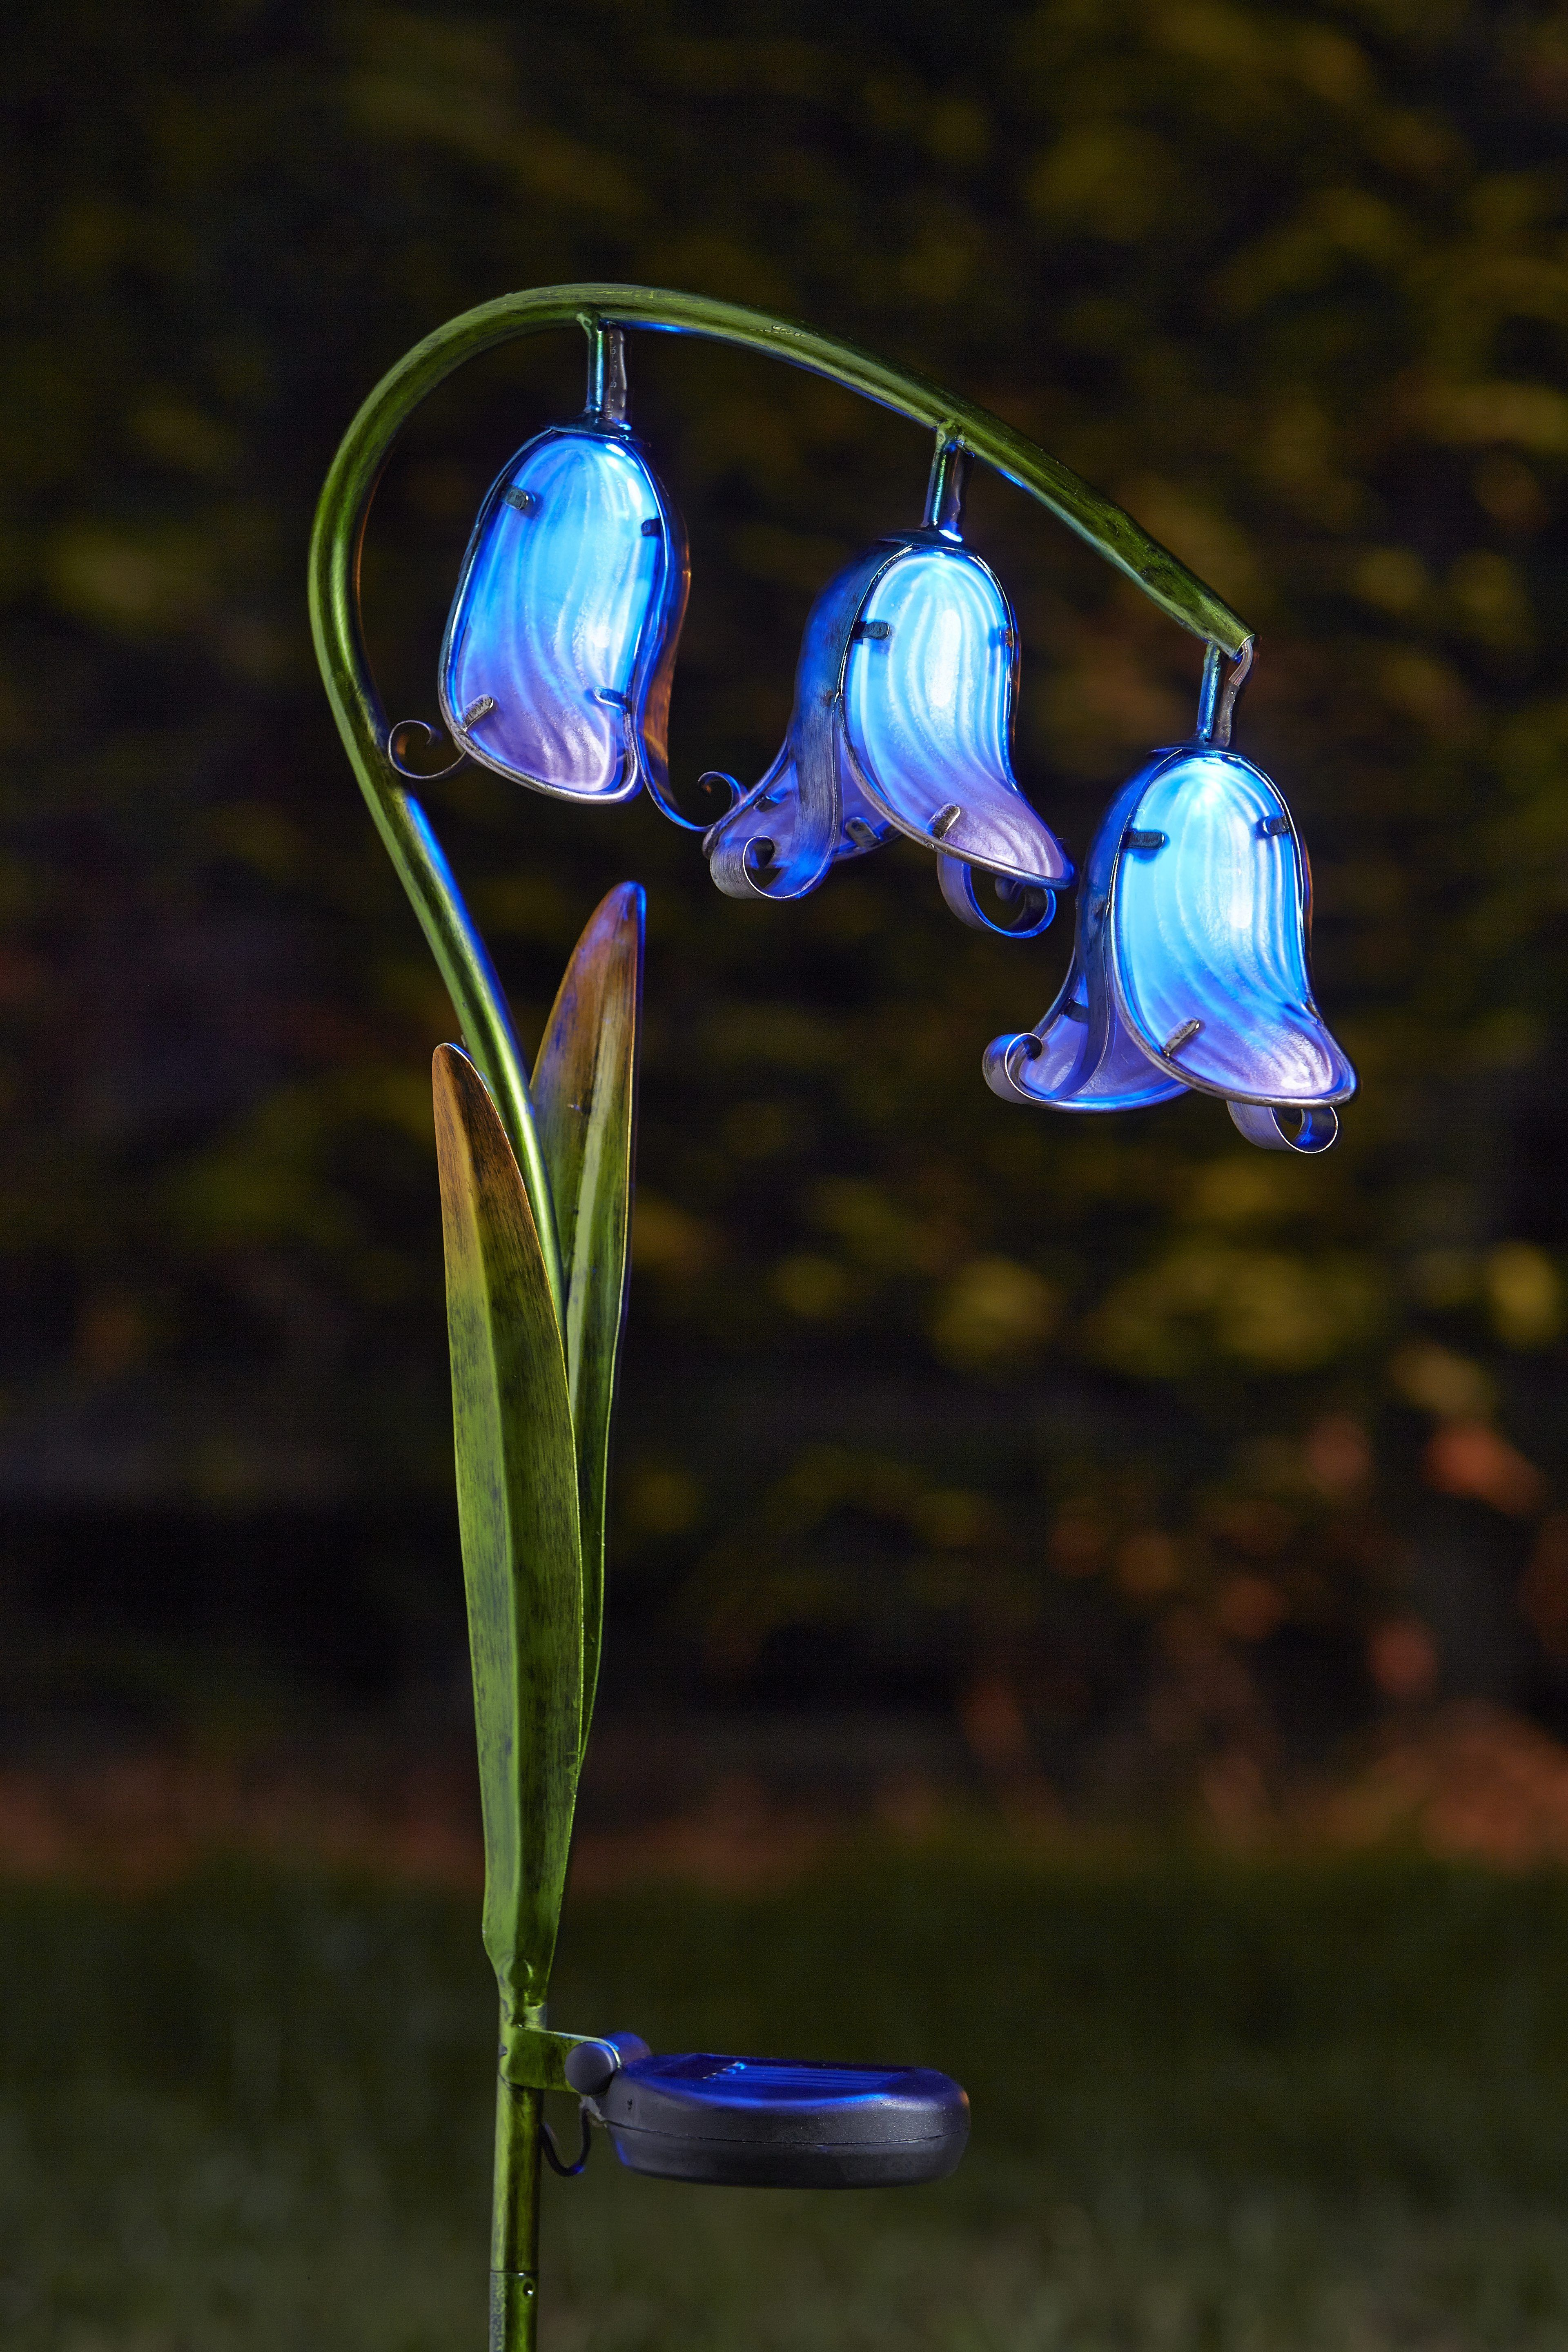 Solar Flowers Bluebells From Capital Gardens Call Us Today To See If We Have It In Stock 01442 875 037